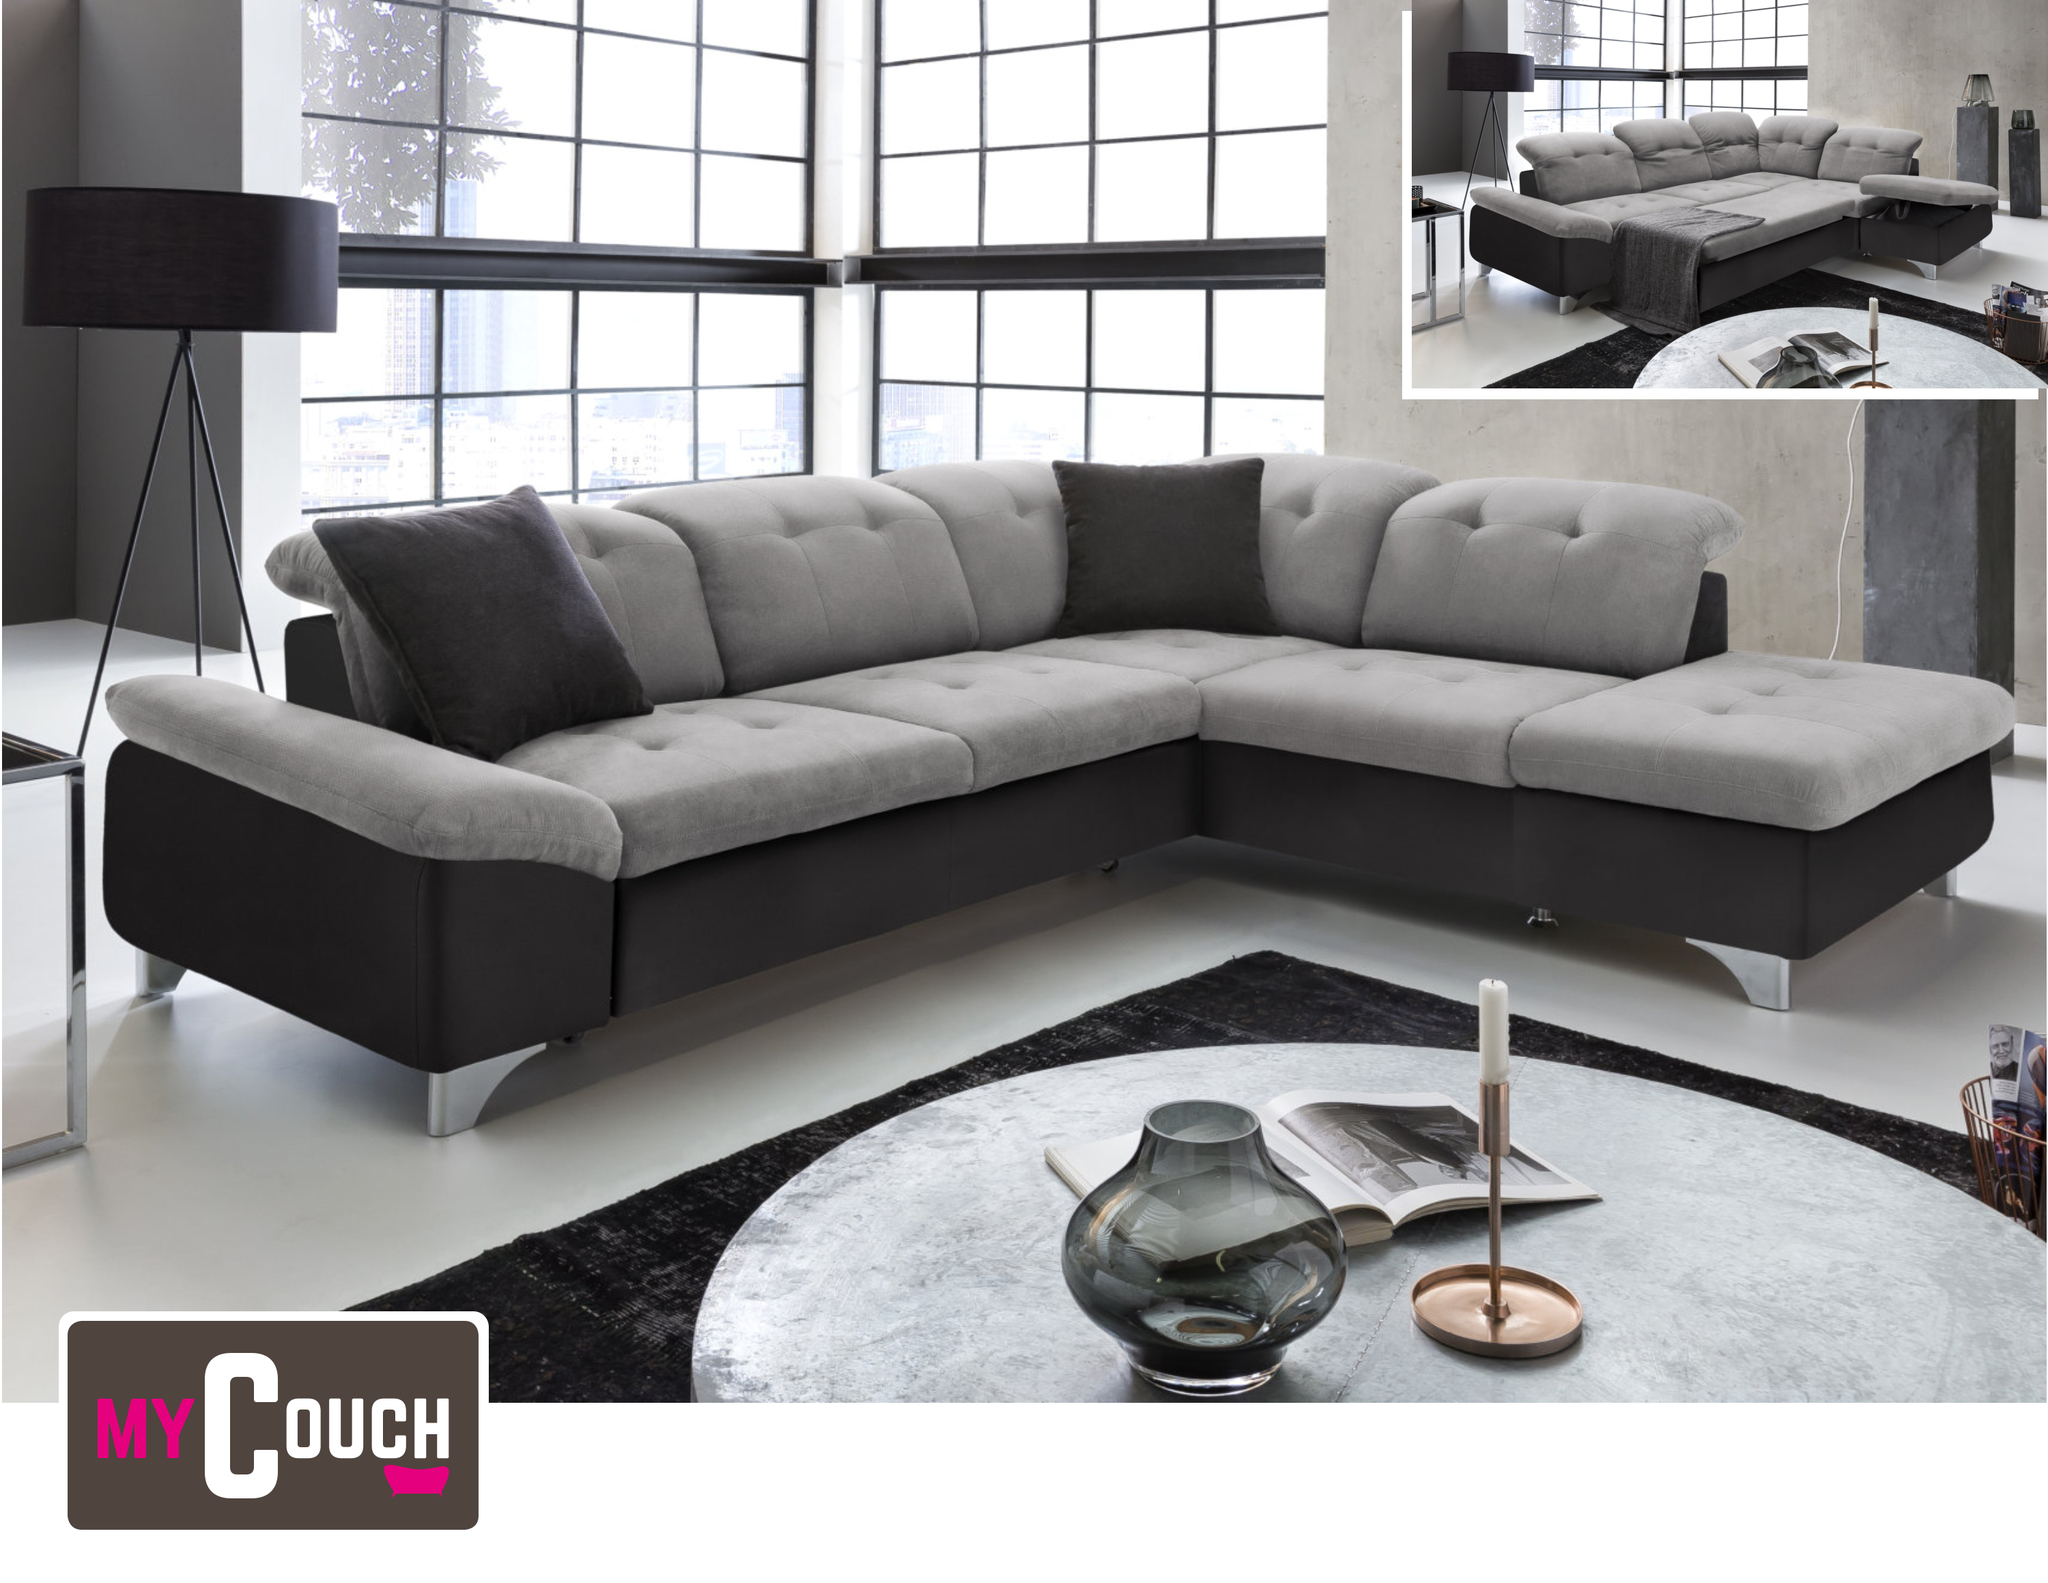 sofa kaufen schweiz g nstig. Black Bedroom Furniture Sets. Home Design Ideas